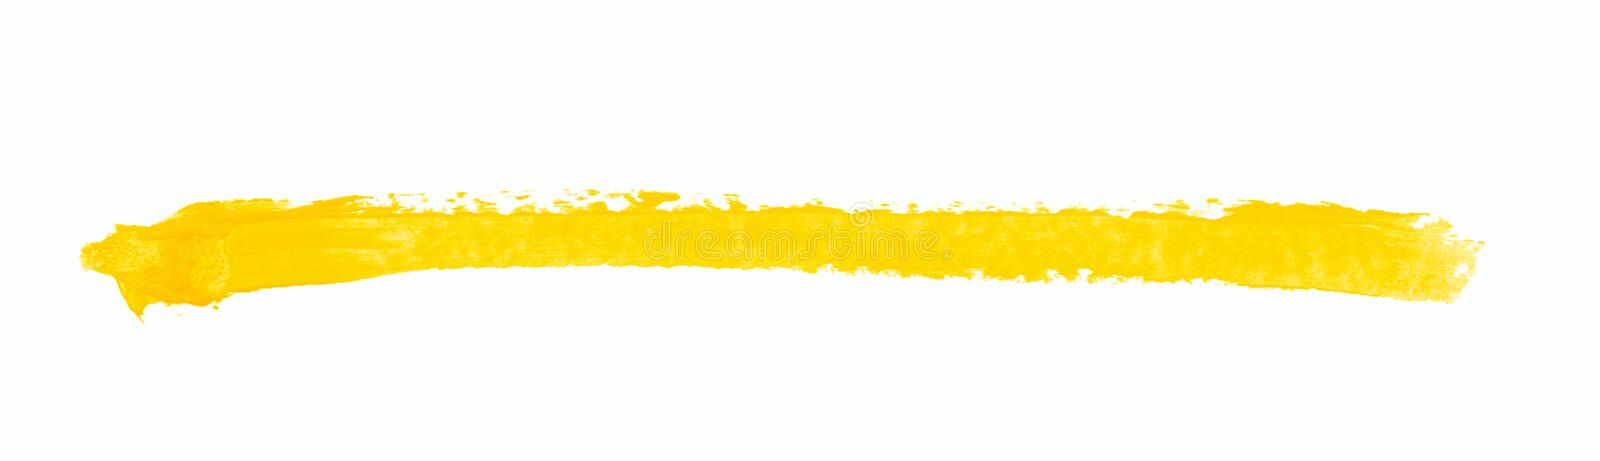 Single line marker stroke isolated. Single line marker stroke of a wax crayon as a design underline element, isolated over the white background royalty free stock photos